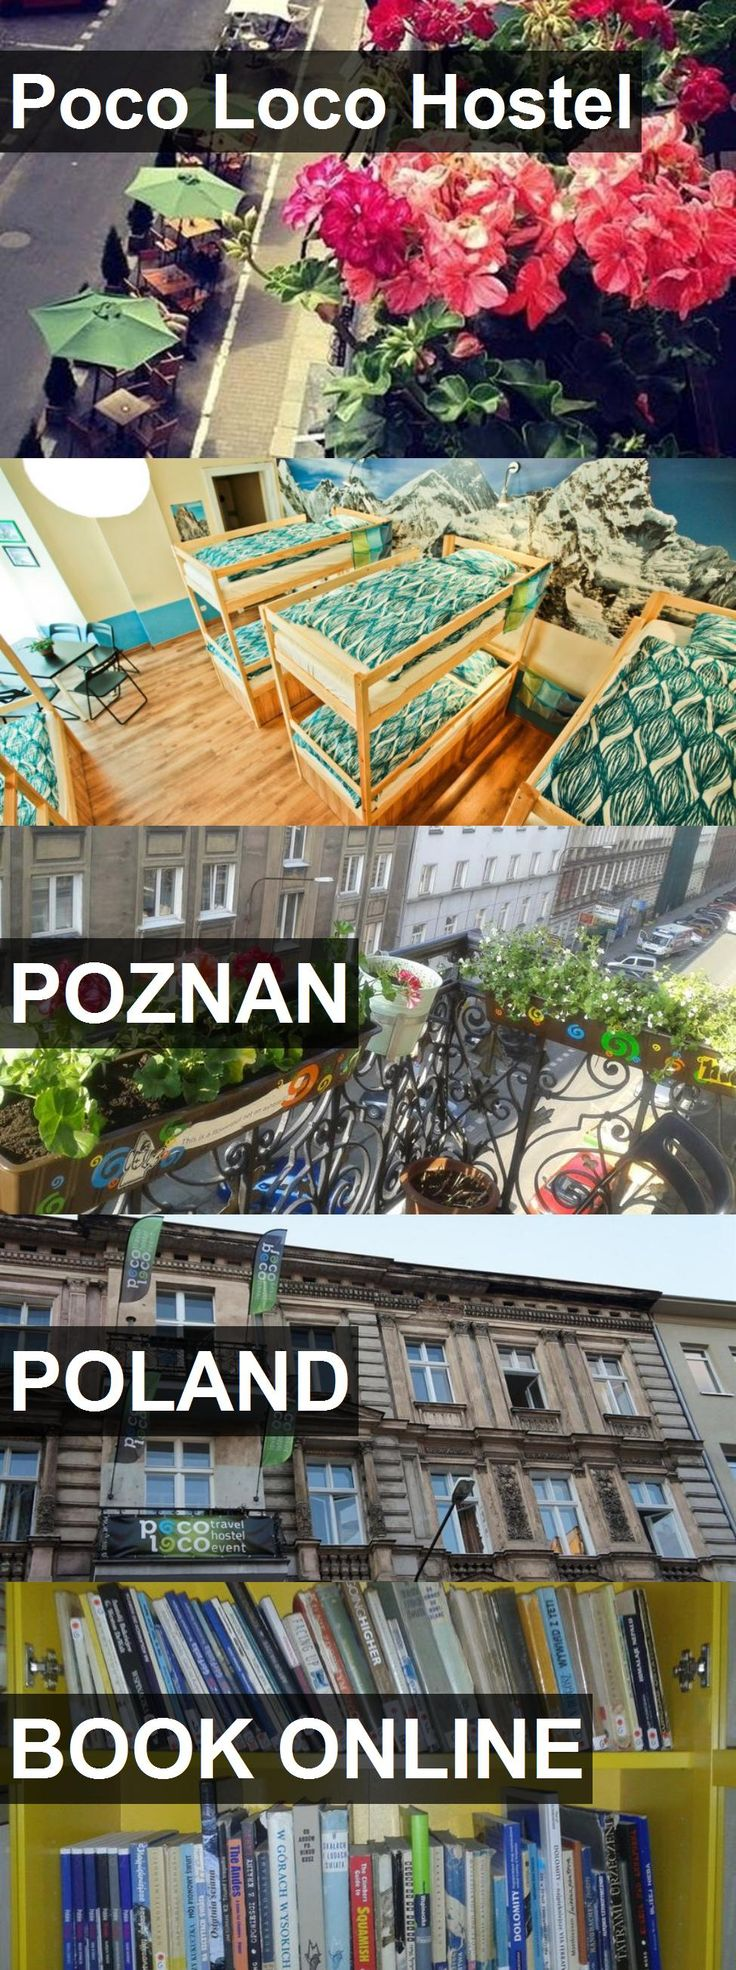 Hotel Poco Loco Hostel in POZNAN, Poland. For more information, photos, reviews and best prices please follow the link. #Poland #POZNAN #hotel #travel #vacation